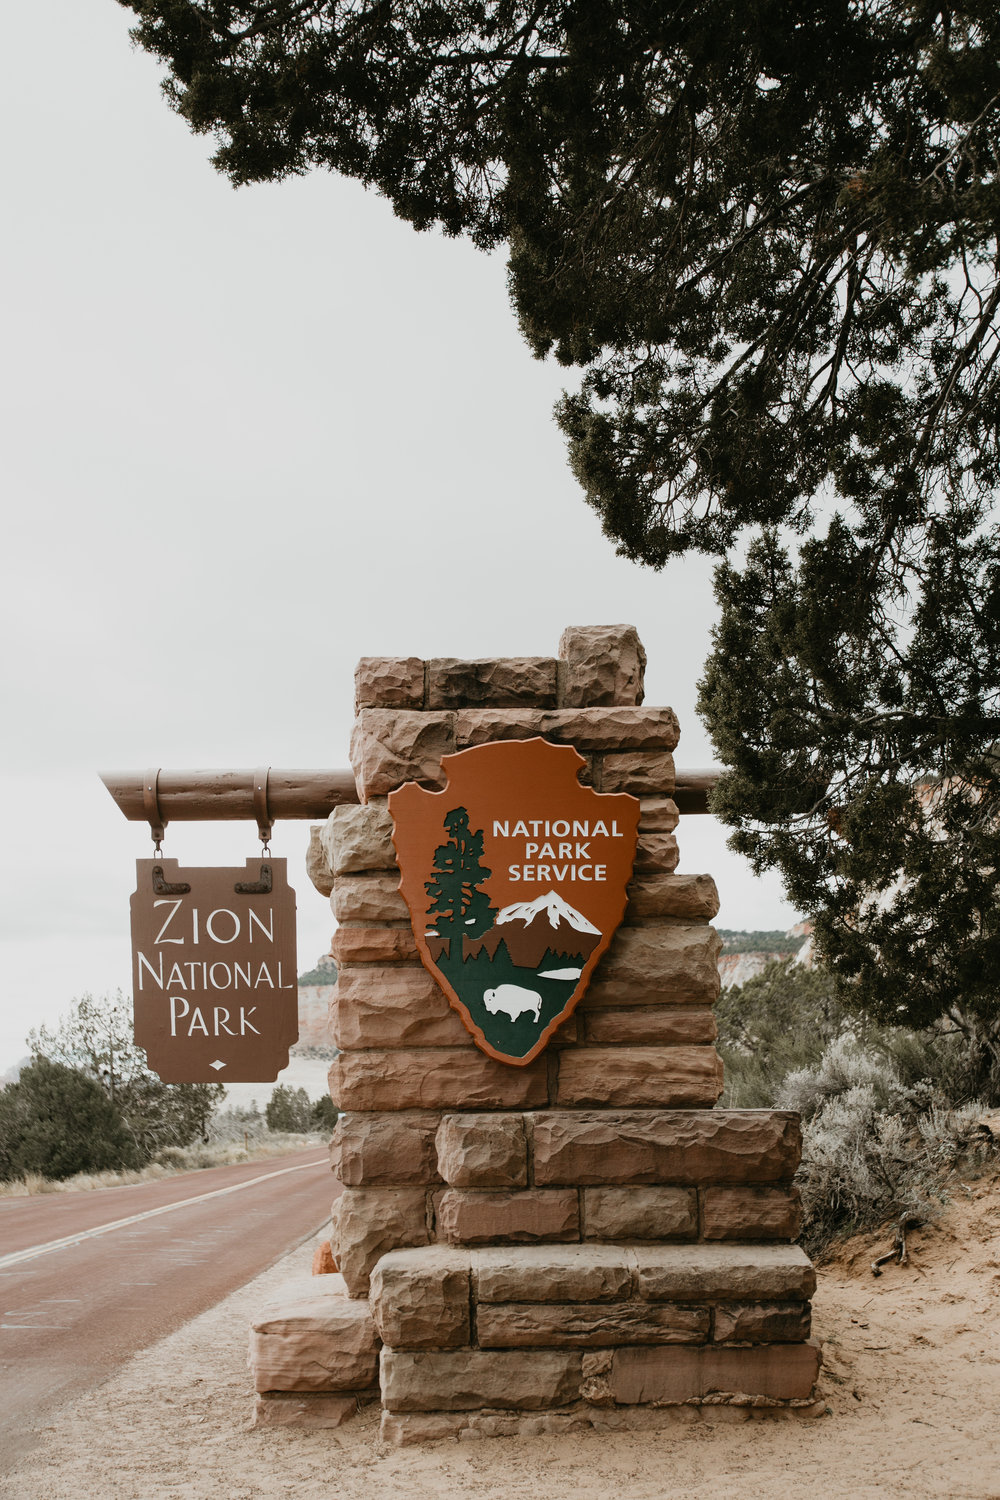 nicole-daacke-photography-zion-national-park-elopement-photographer-canyon-overlook-trail-elope-hiking-adventure-wedding-photos-fall-utah-red-rock-canyon-stgeorge-eloping-photographer-1.jpg